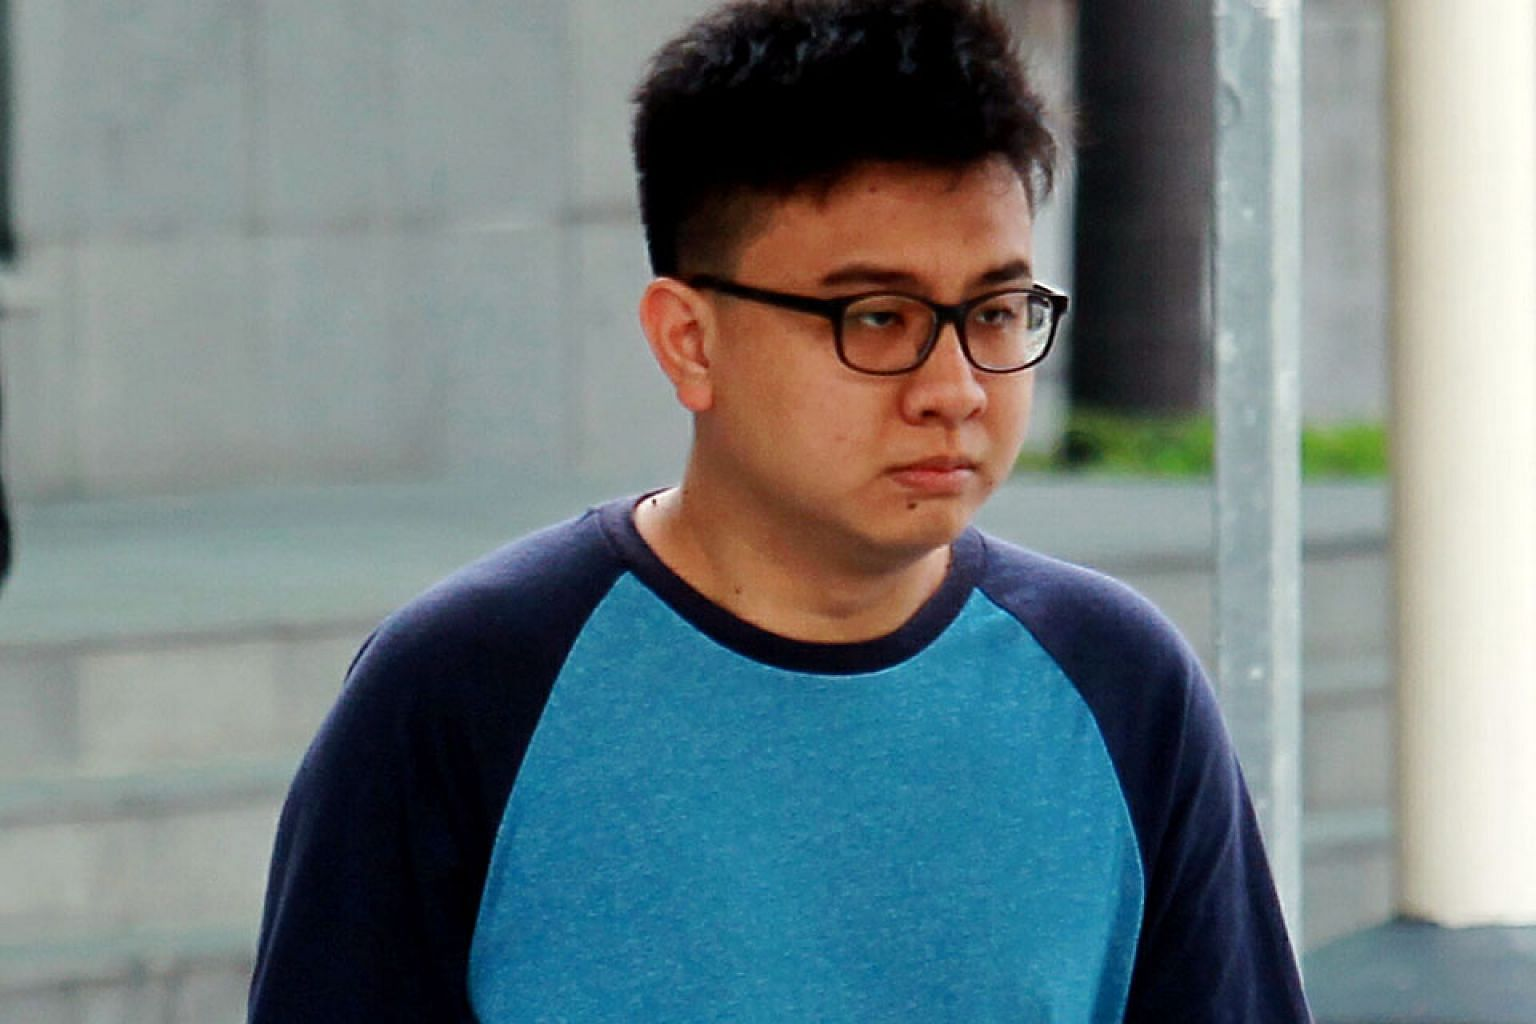 Yang's about-turn yesterday will cut short the trial, which had started in March.